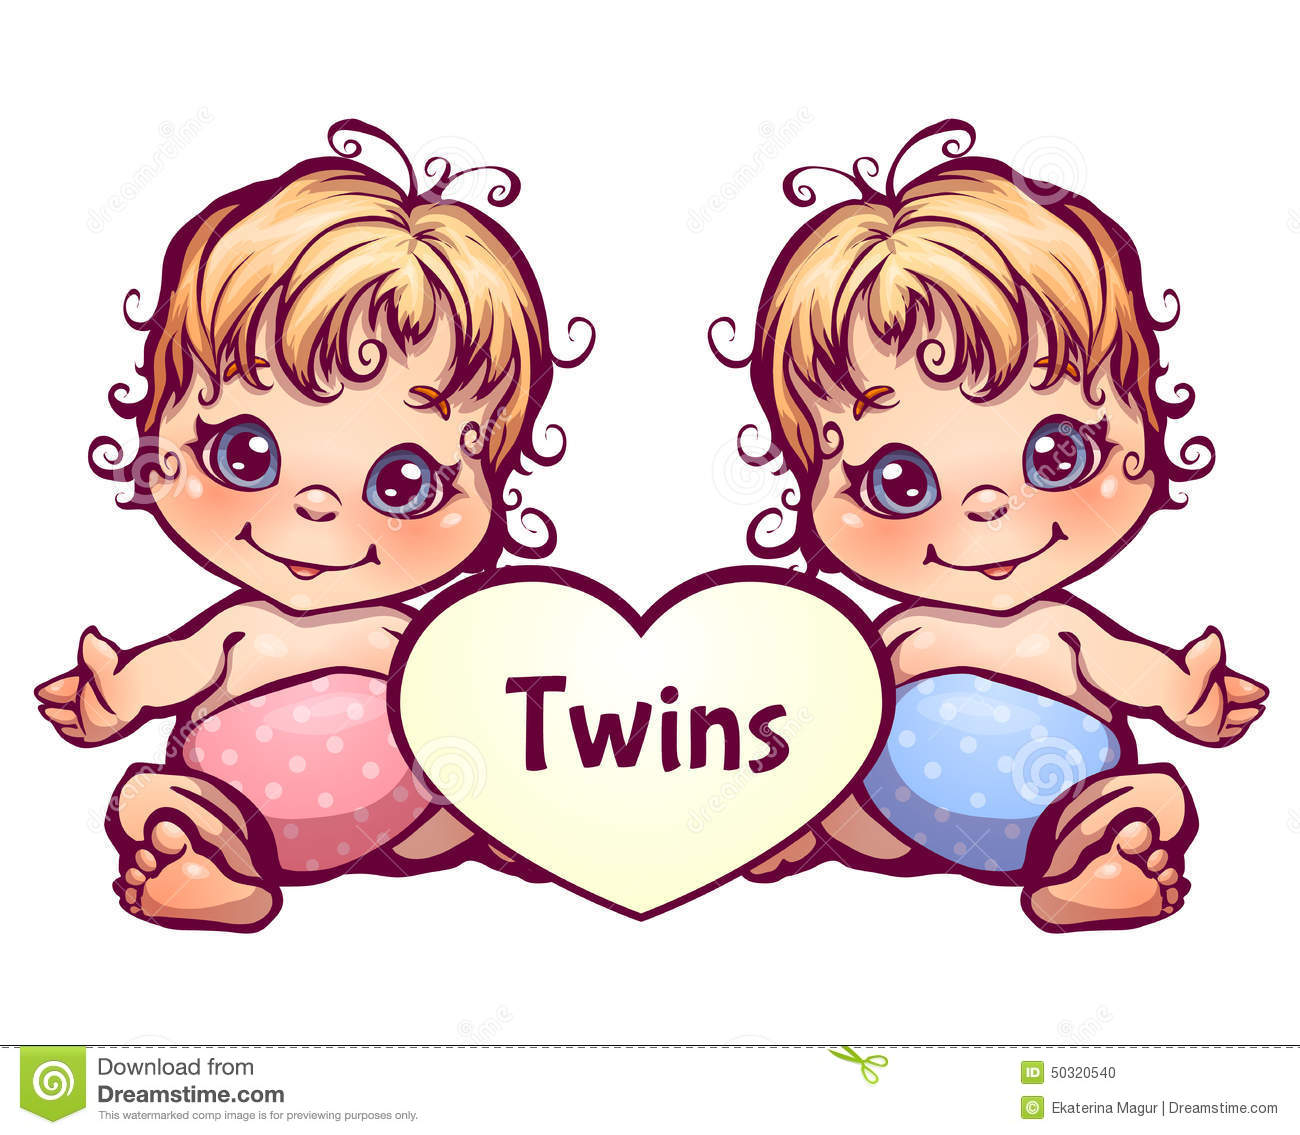 Sweet twins royalty free stock photo image 10320675 - Vector Illustration Of Cartoon Little Baby Twins Stock Photo